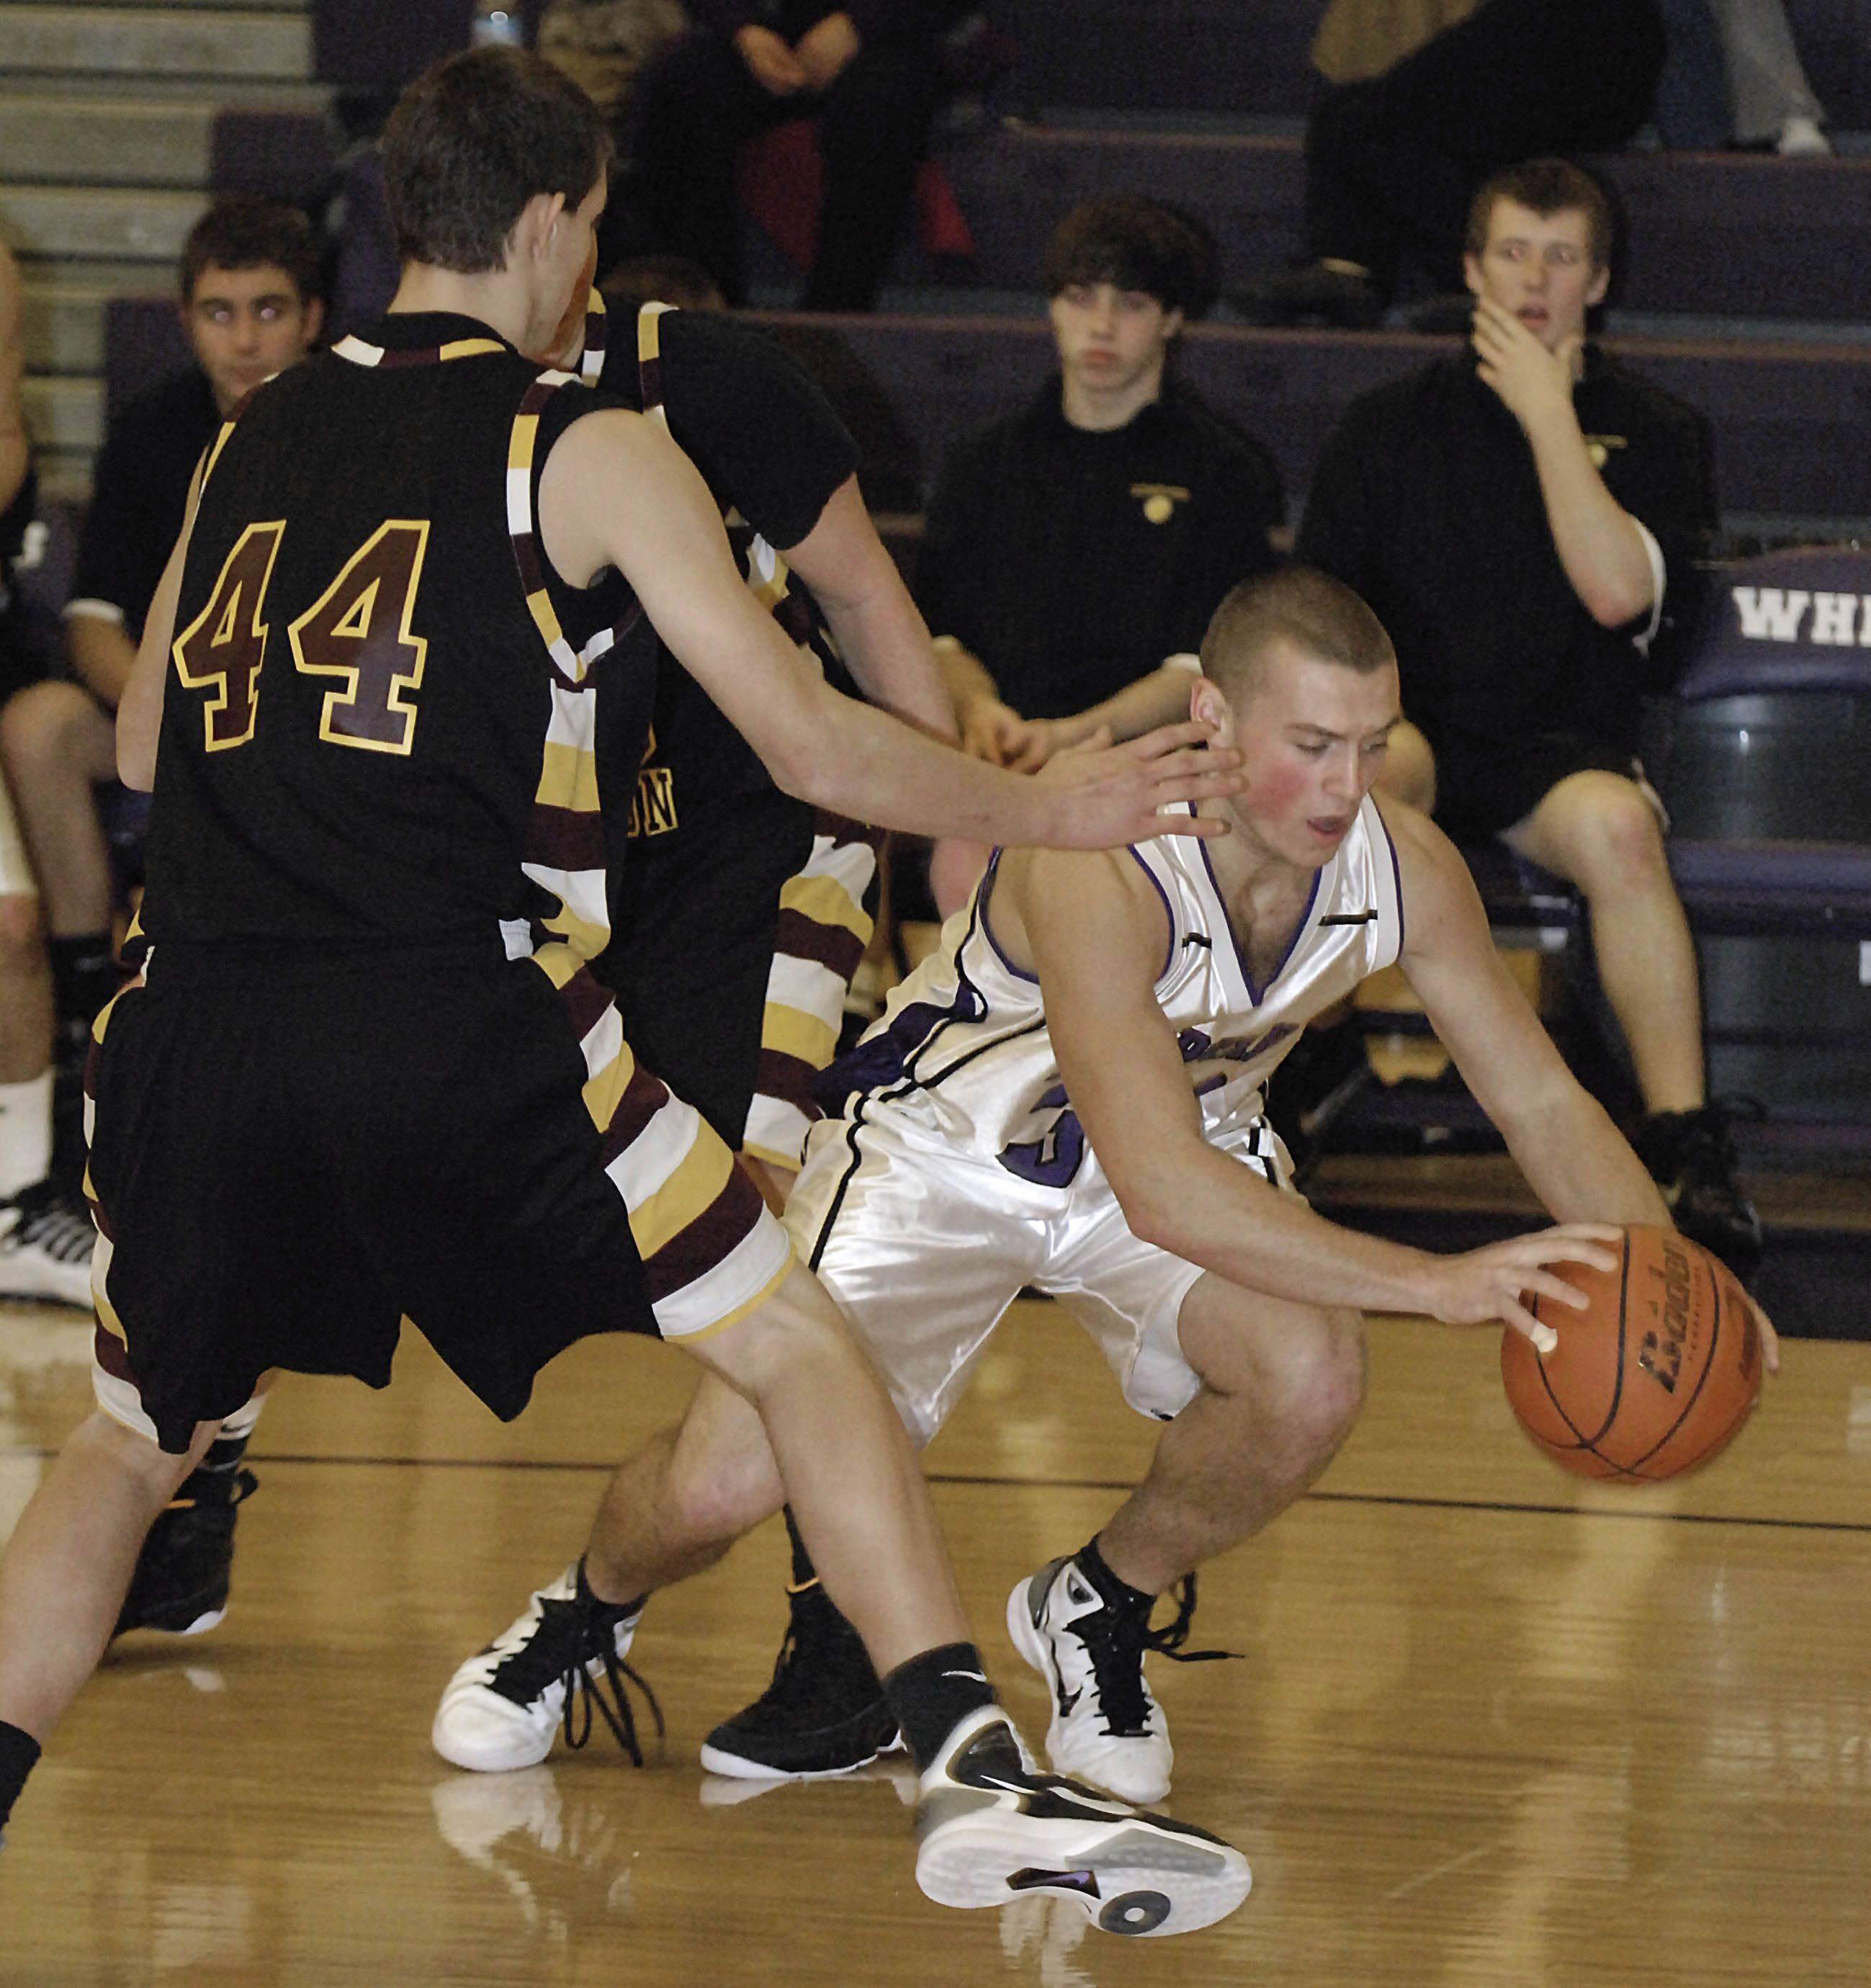 Images from the Richmond vs. Hampshire boys basketball game Saturday, January 8, 2011.